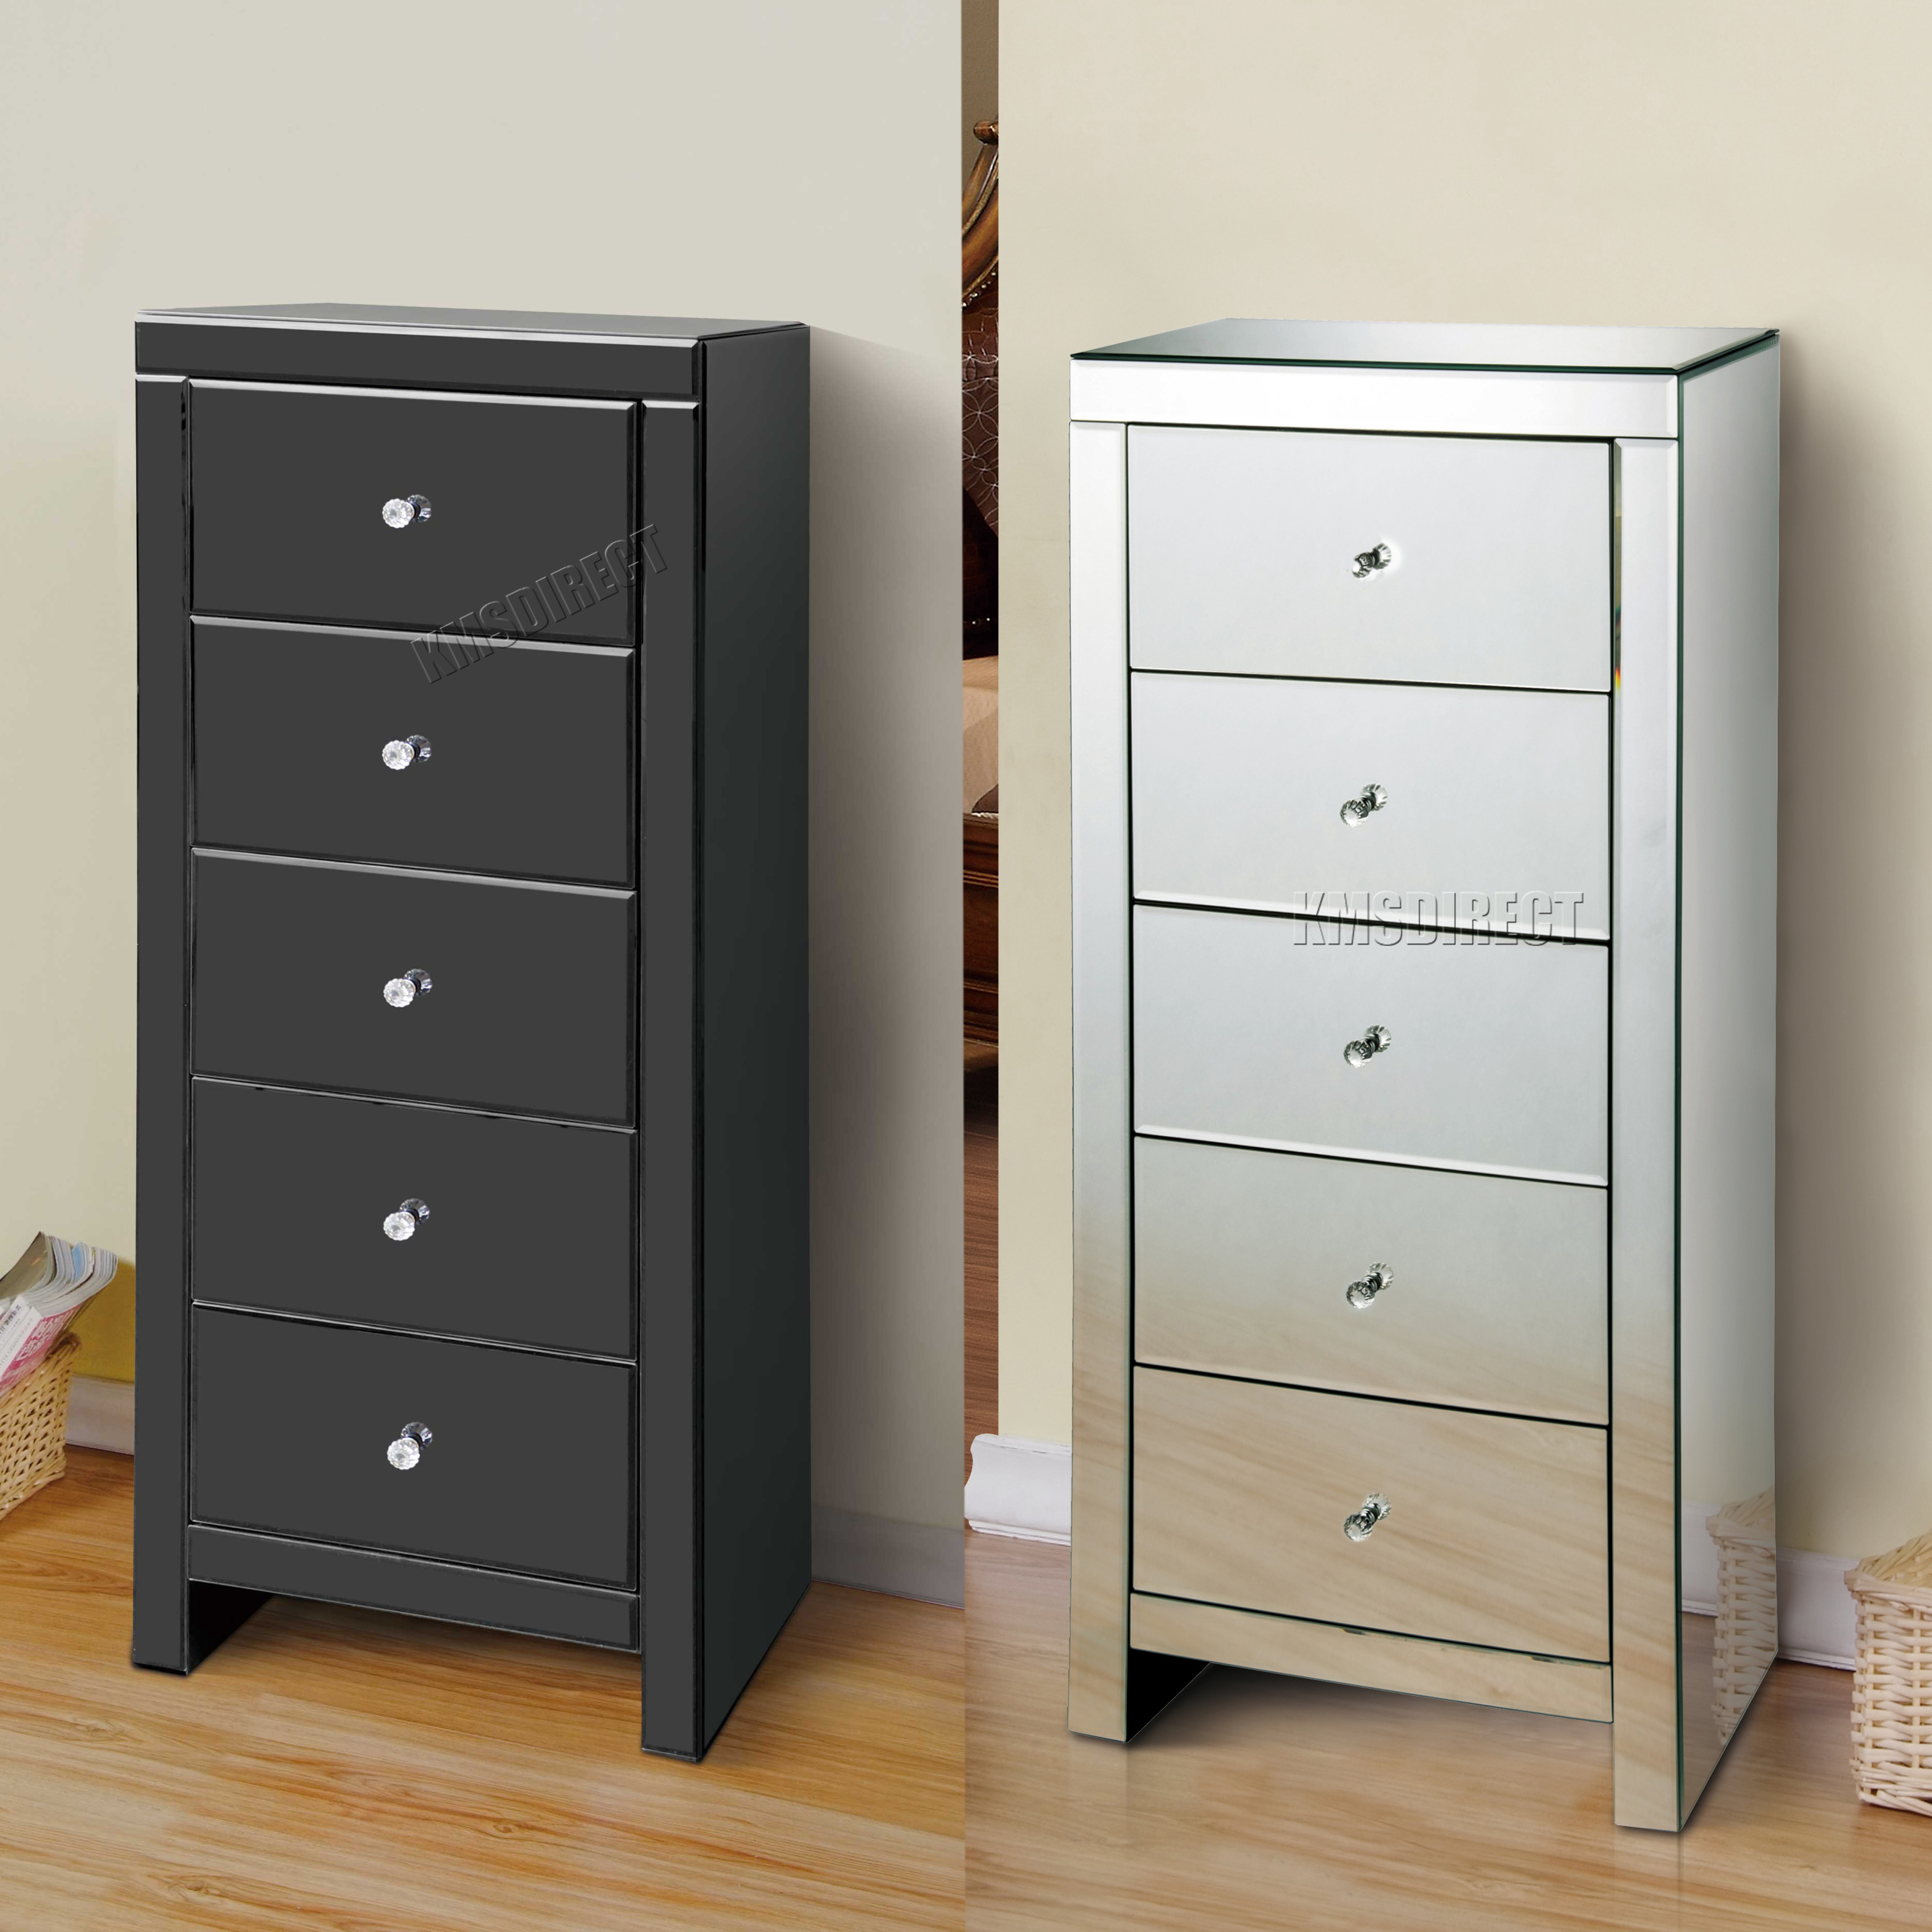 Foxhunter Mirrored Furniture Glass 5 Drawers Tallboy Chest Cabinet Bedroom Mtc01 Ebay